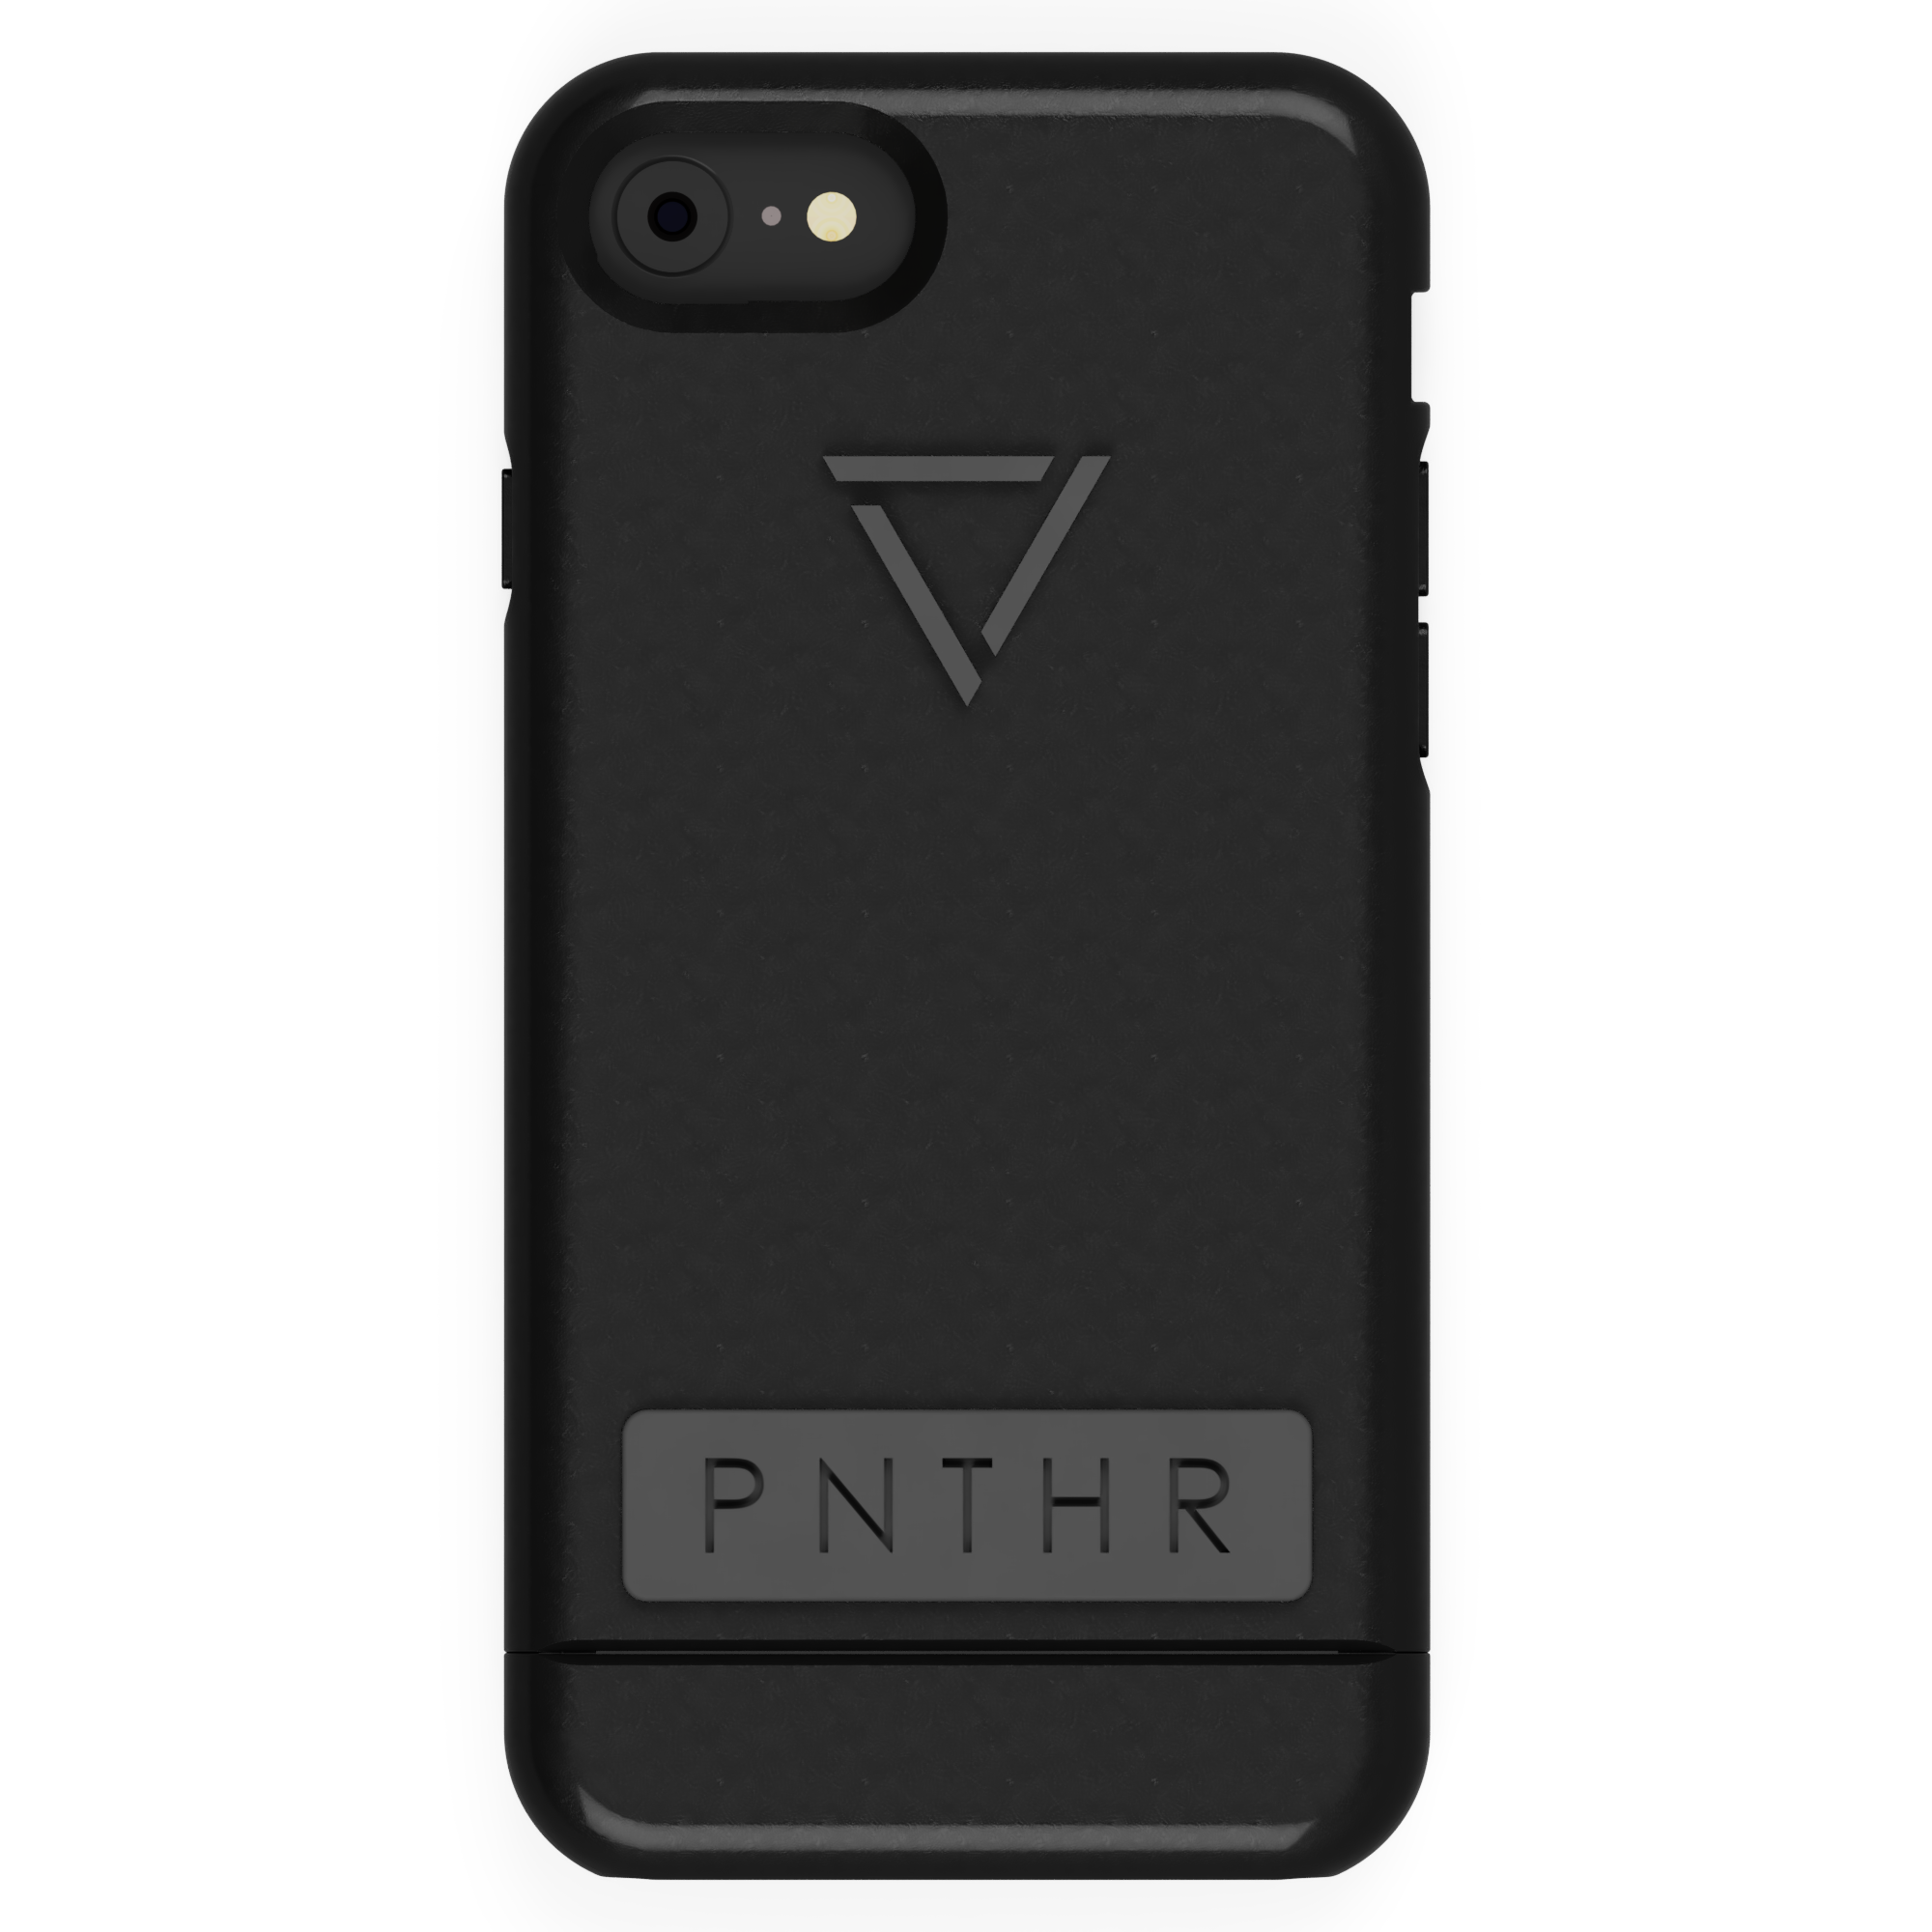 pnthr rear.png